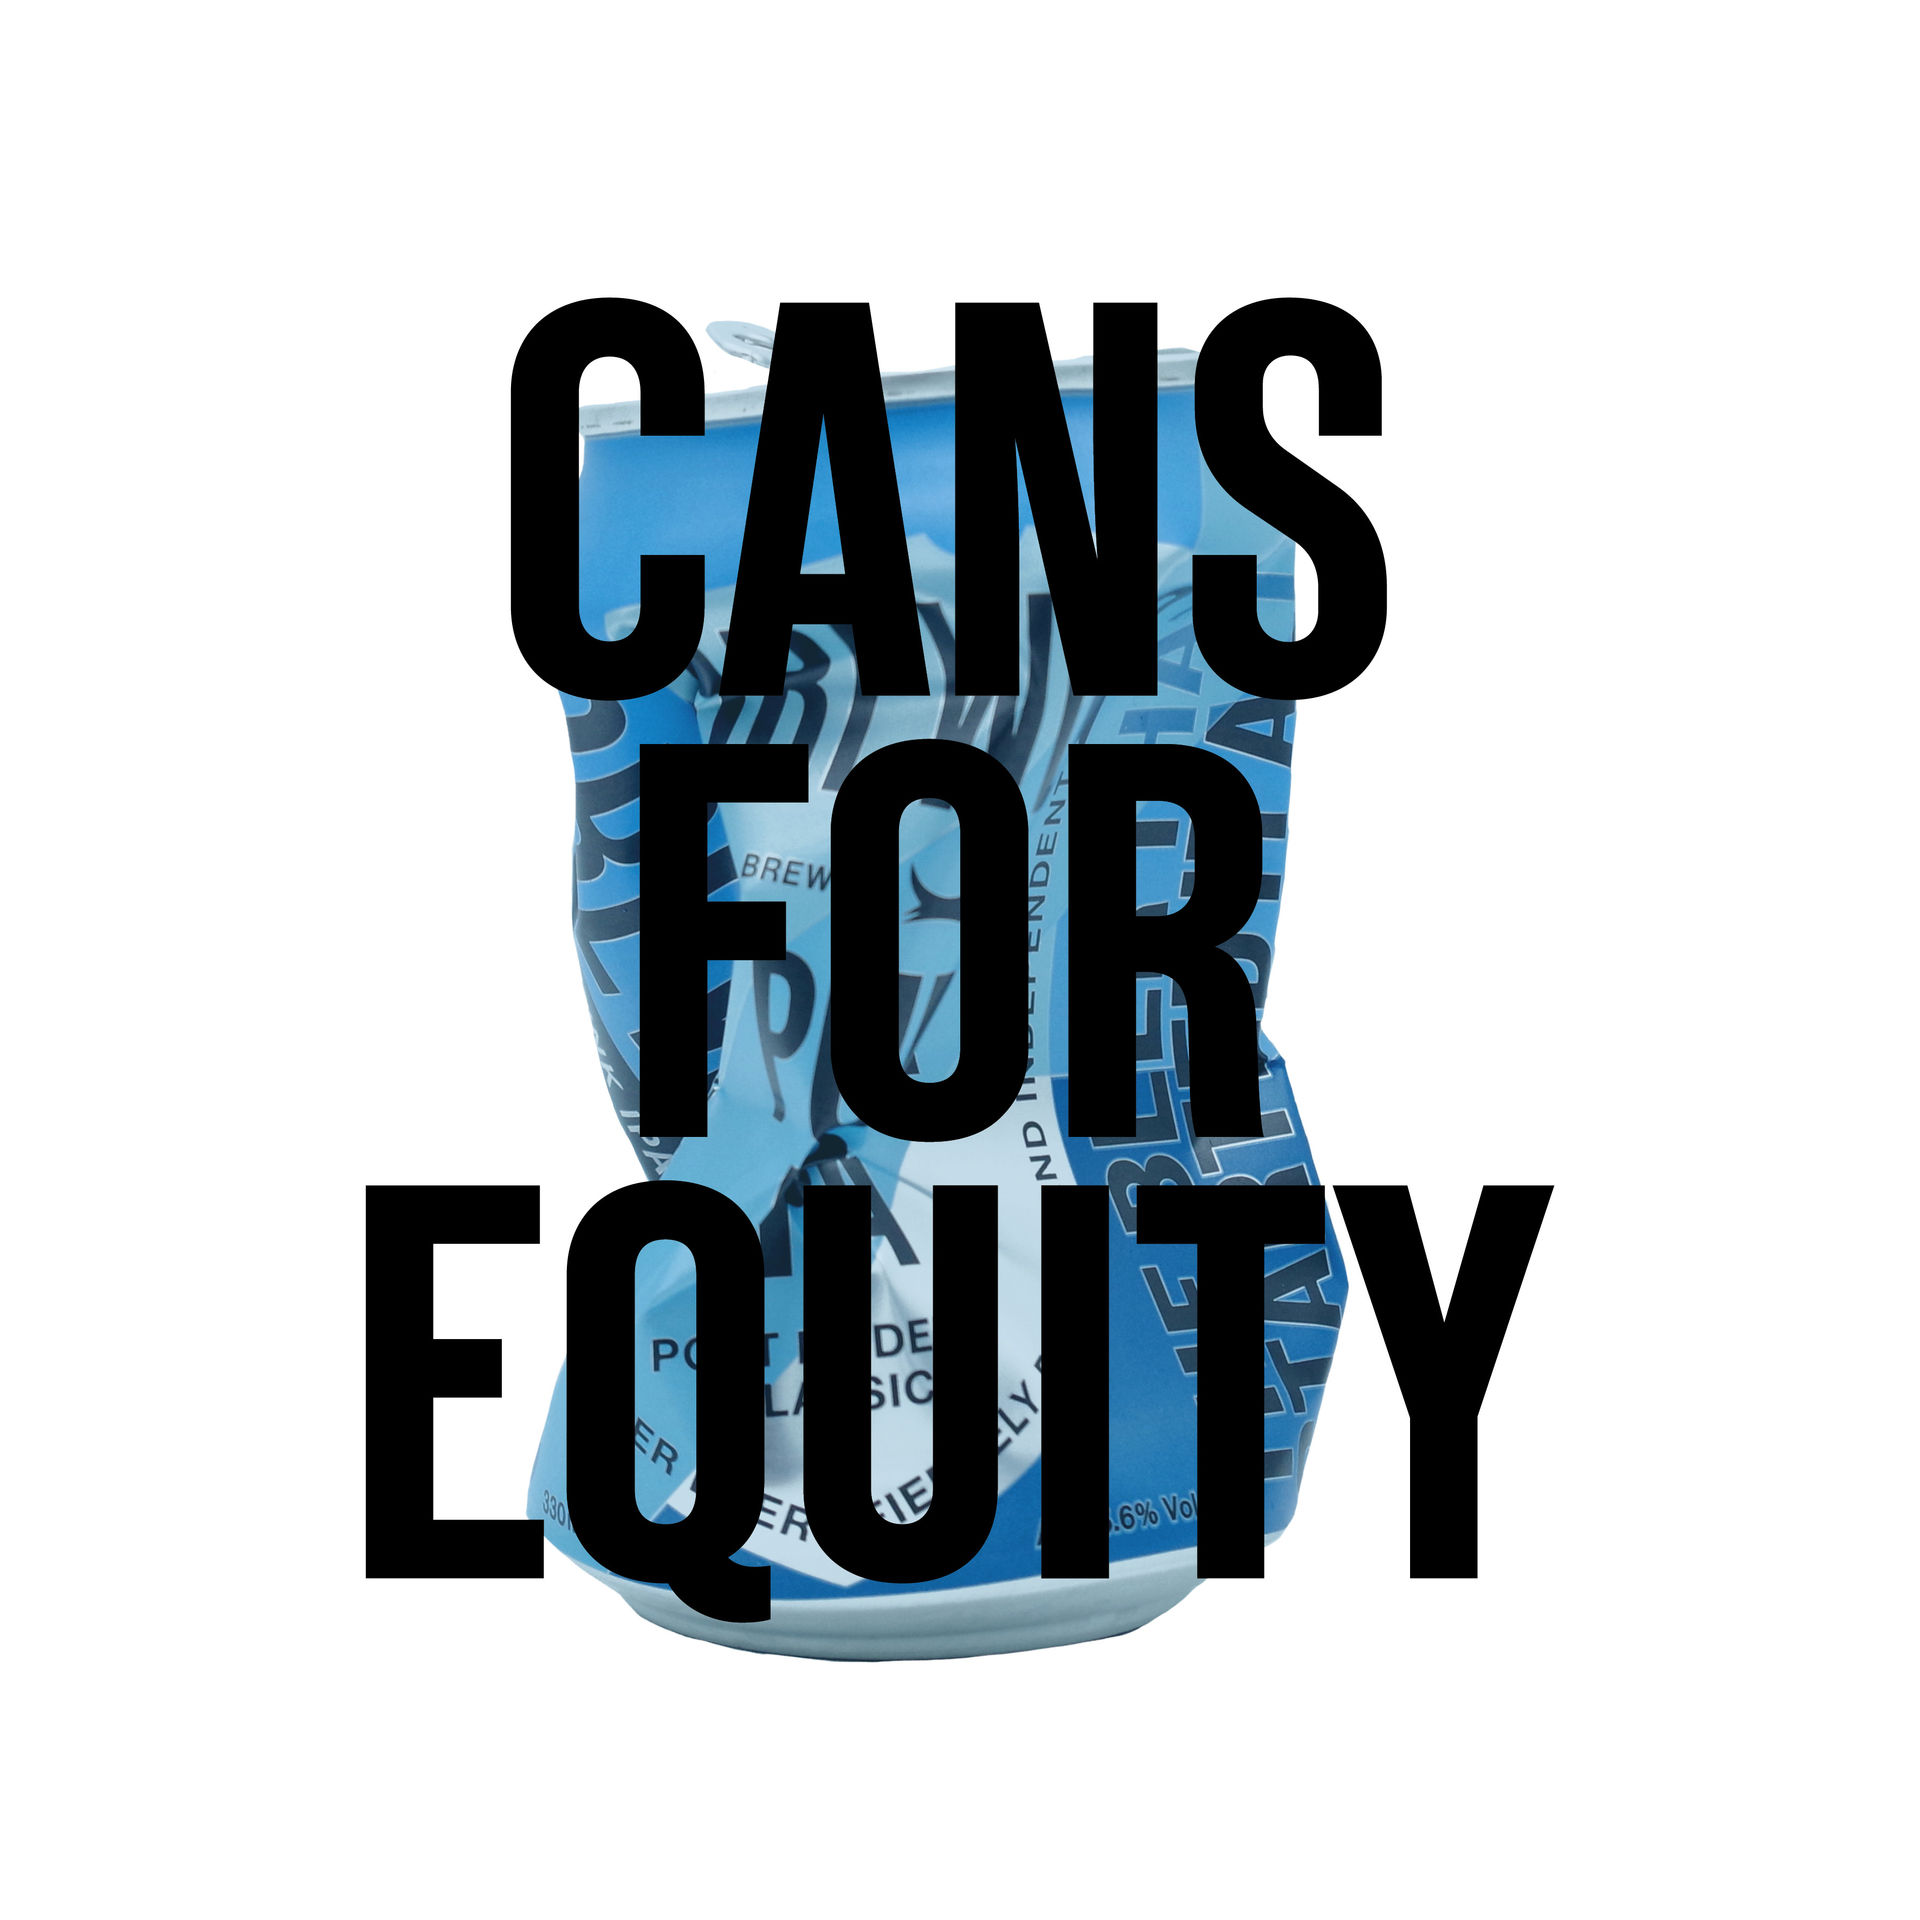 Deliver 50 BrewDog cans to your local bar in exchange for a share